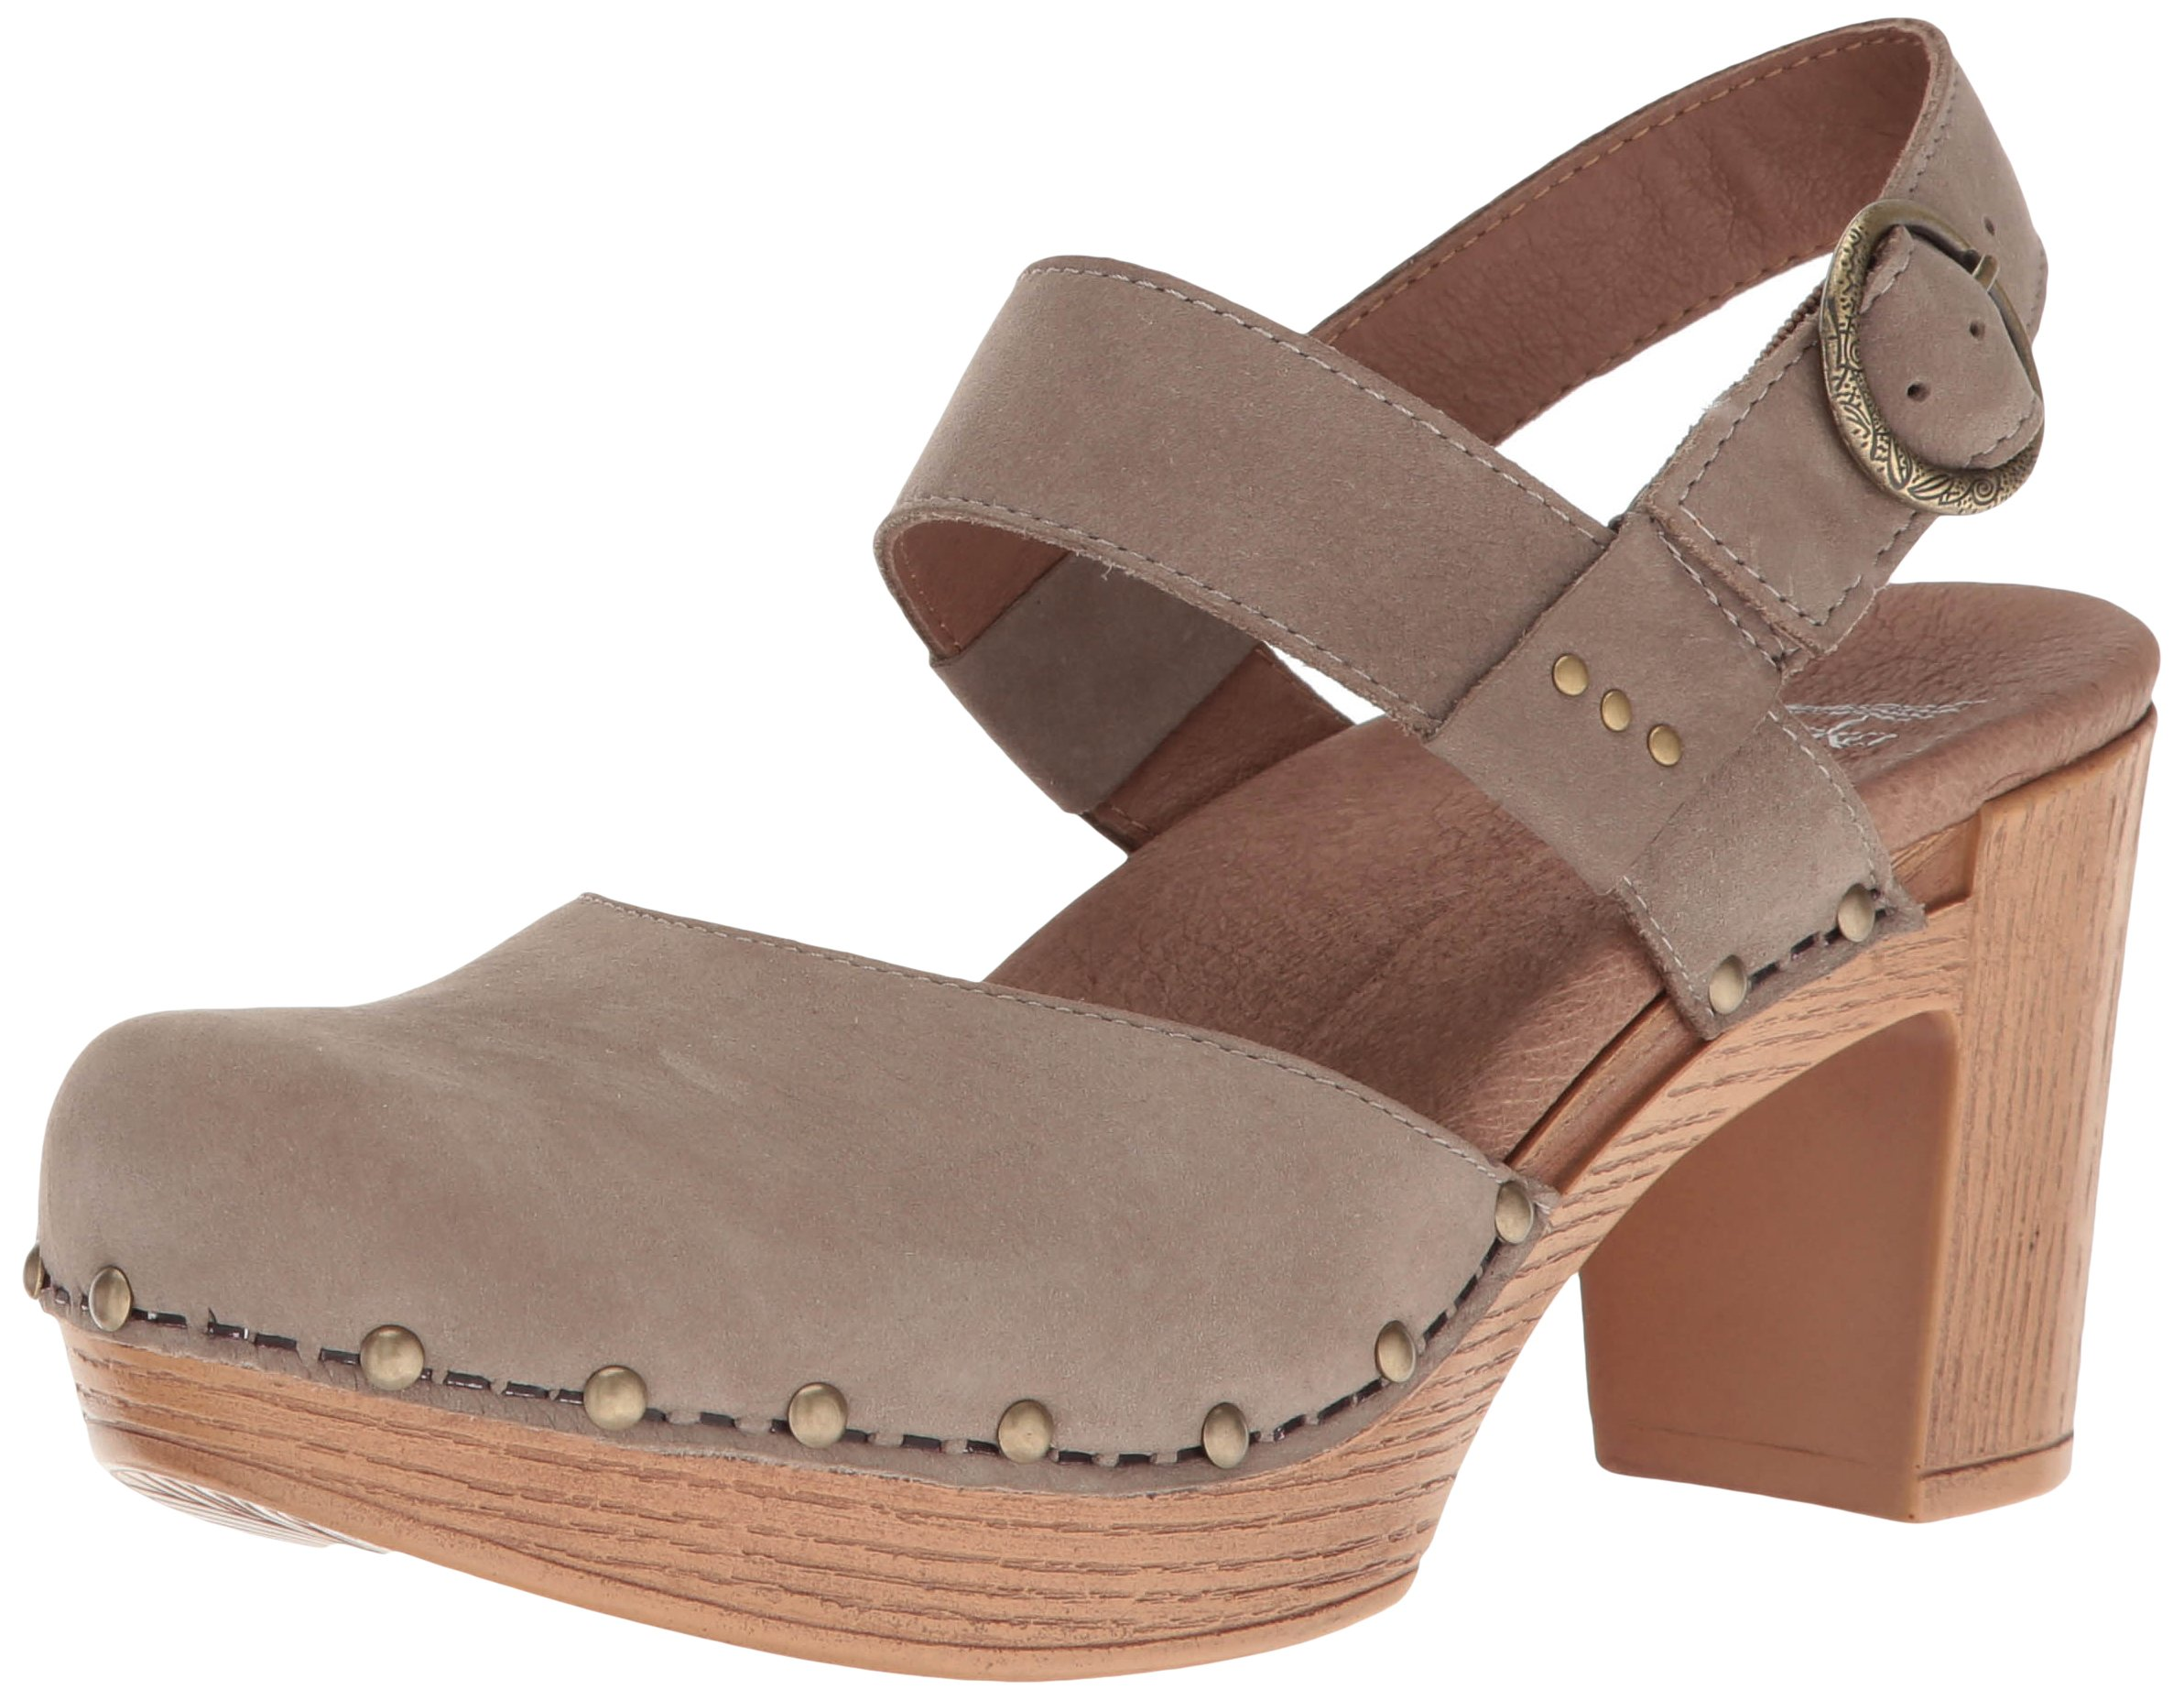 Dansko Women's Dotty Heeled Sandal, Taupe Milled Nubuck, 40 EU/9.5-10 M US